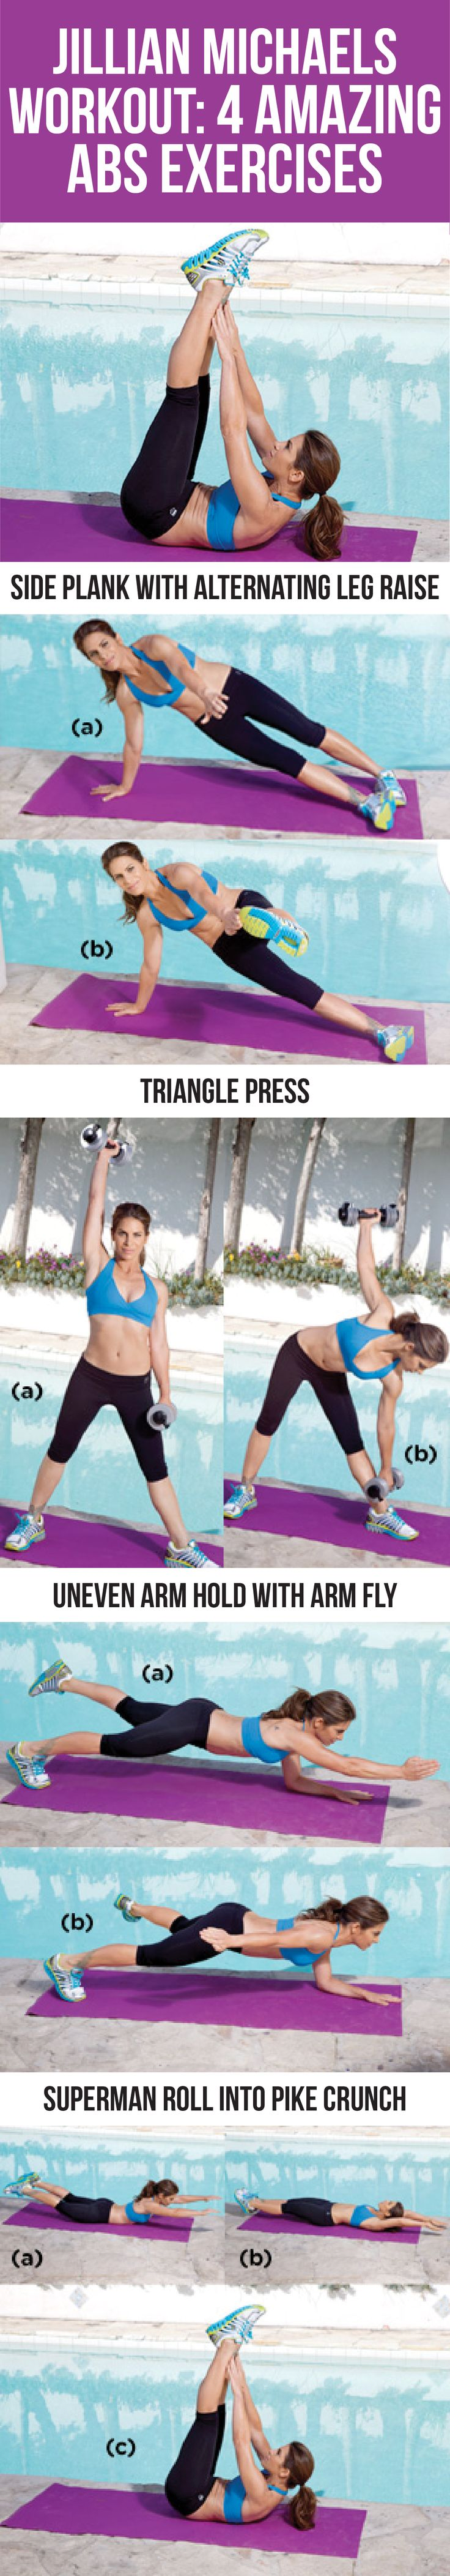 Jillian Michaels Workout: 4 Amazing Abs Exercises